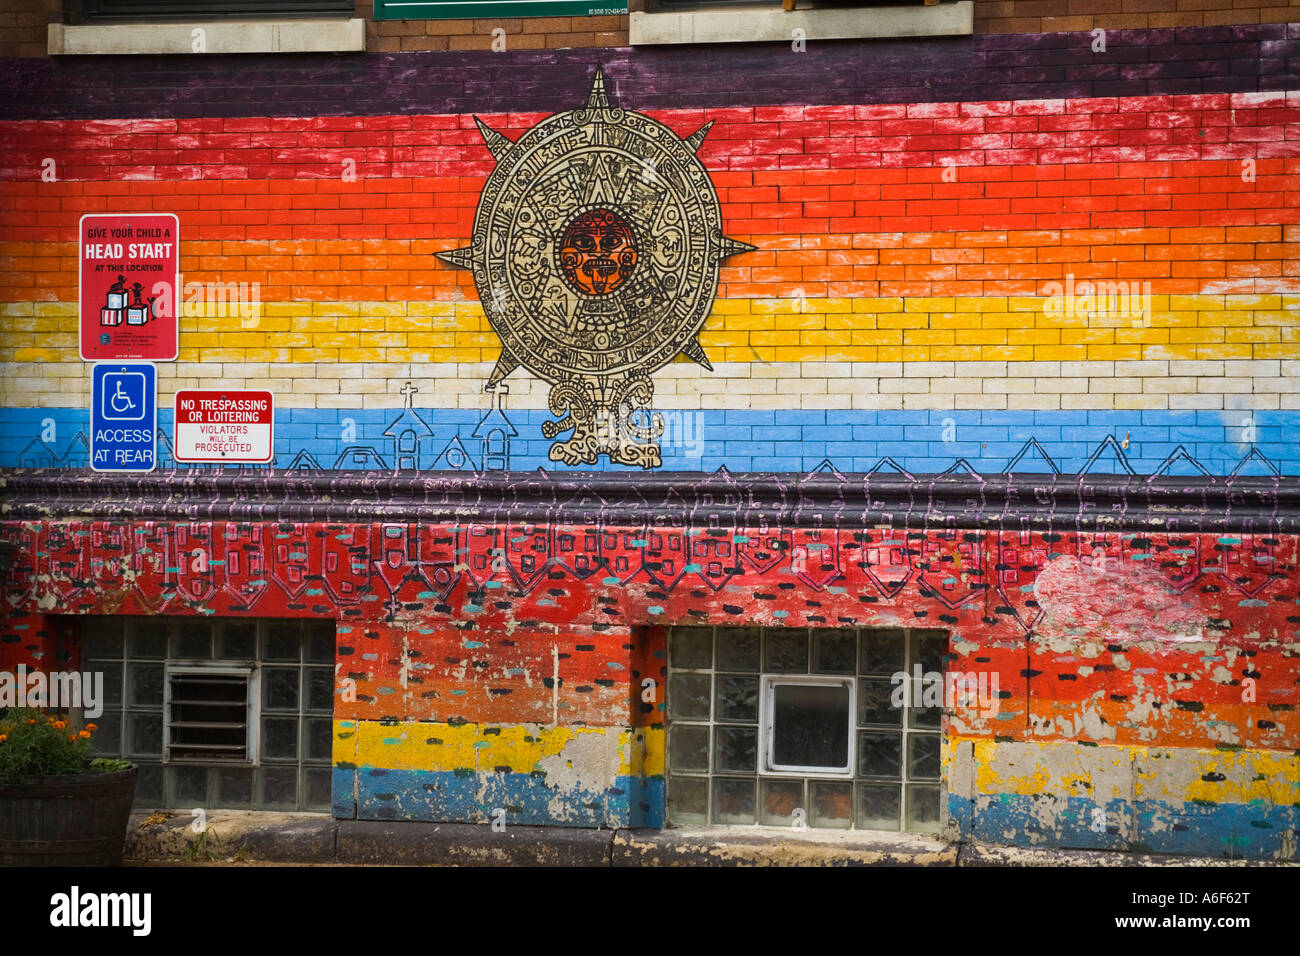 Illinois chicago outdoor mural on building for head start for Mural in chicago illinois